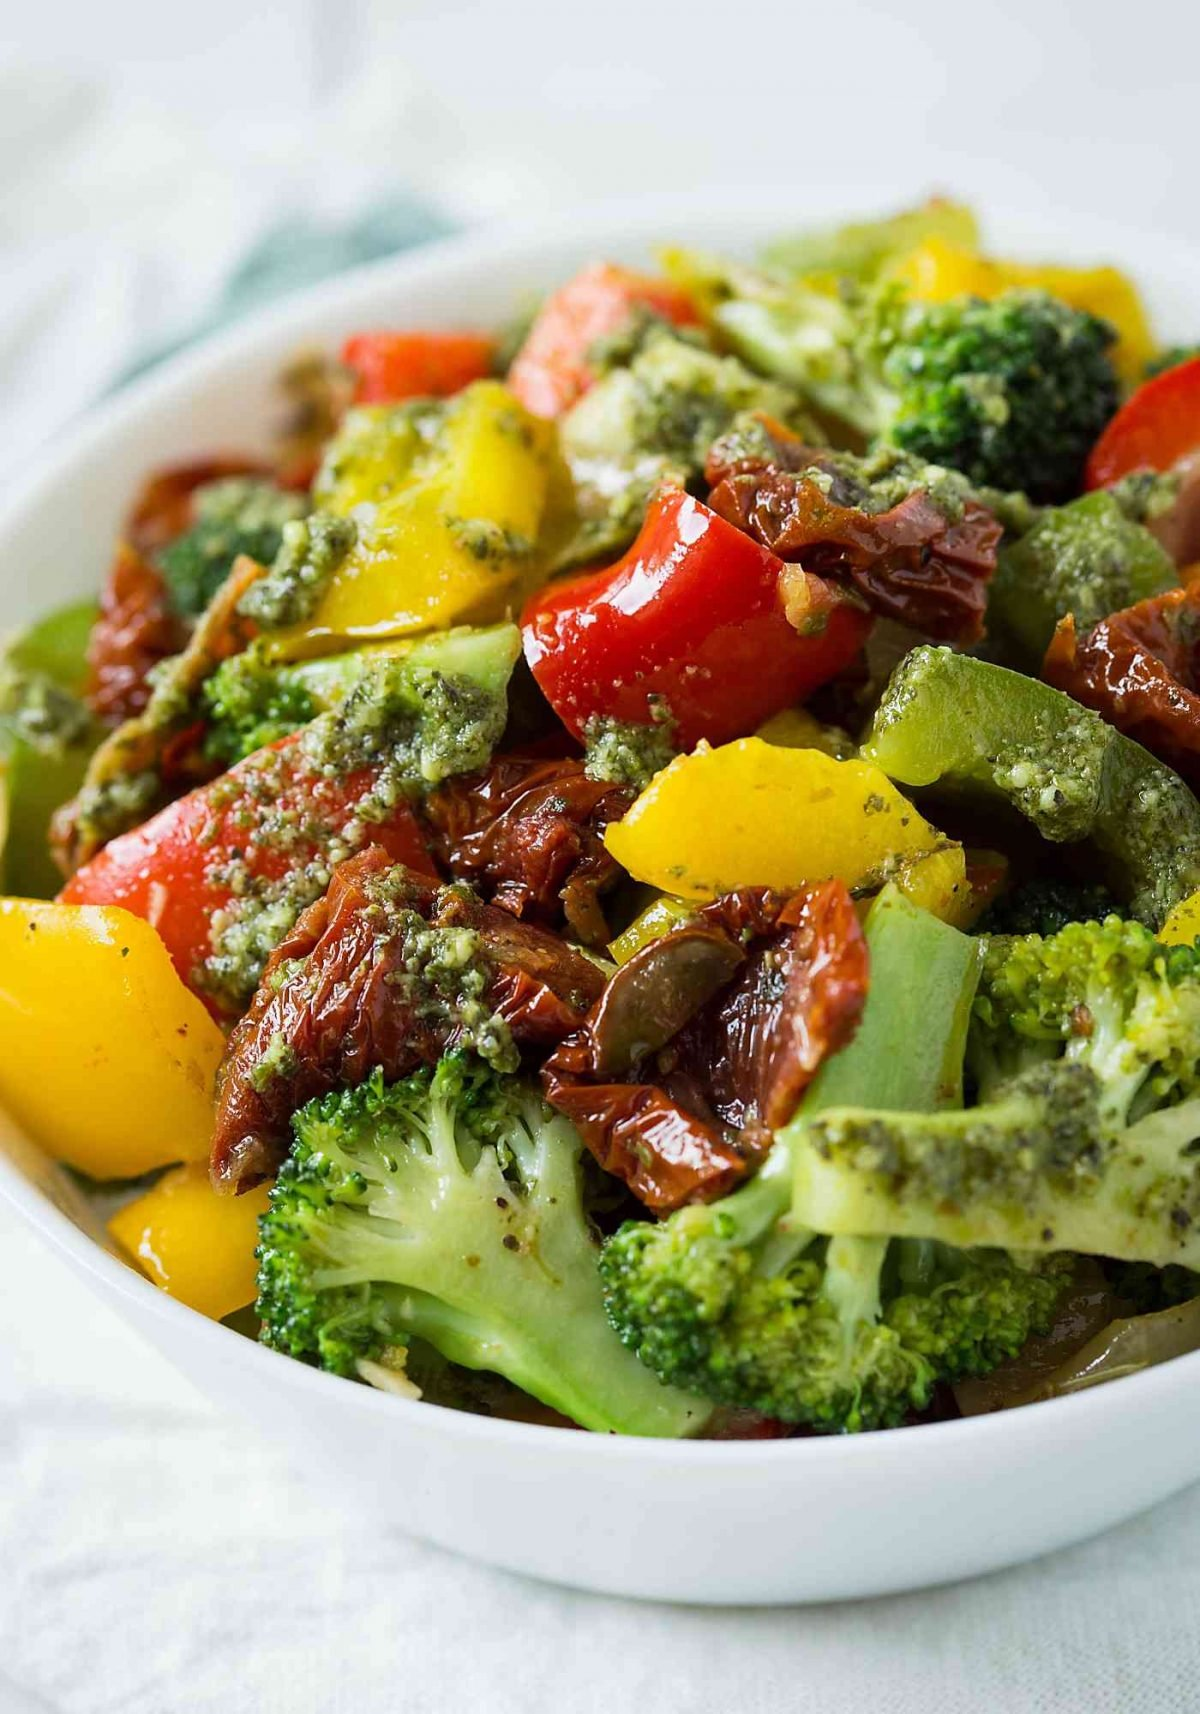 This stir-fry veggies get ready in no time. Serve as a side to pasta or rice dishes for a complete wholesome meal.